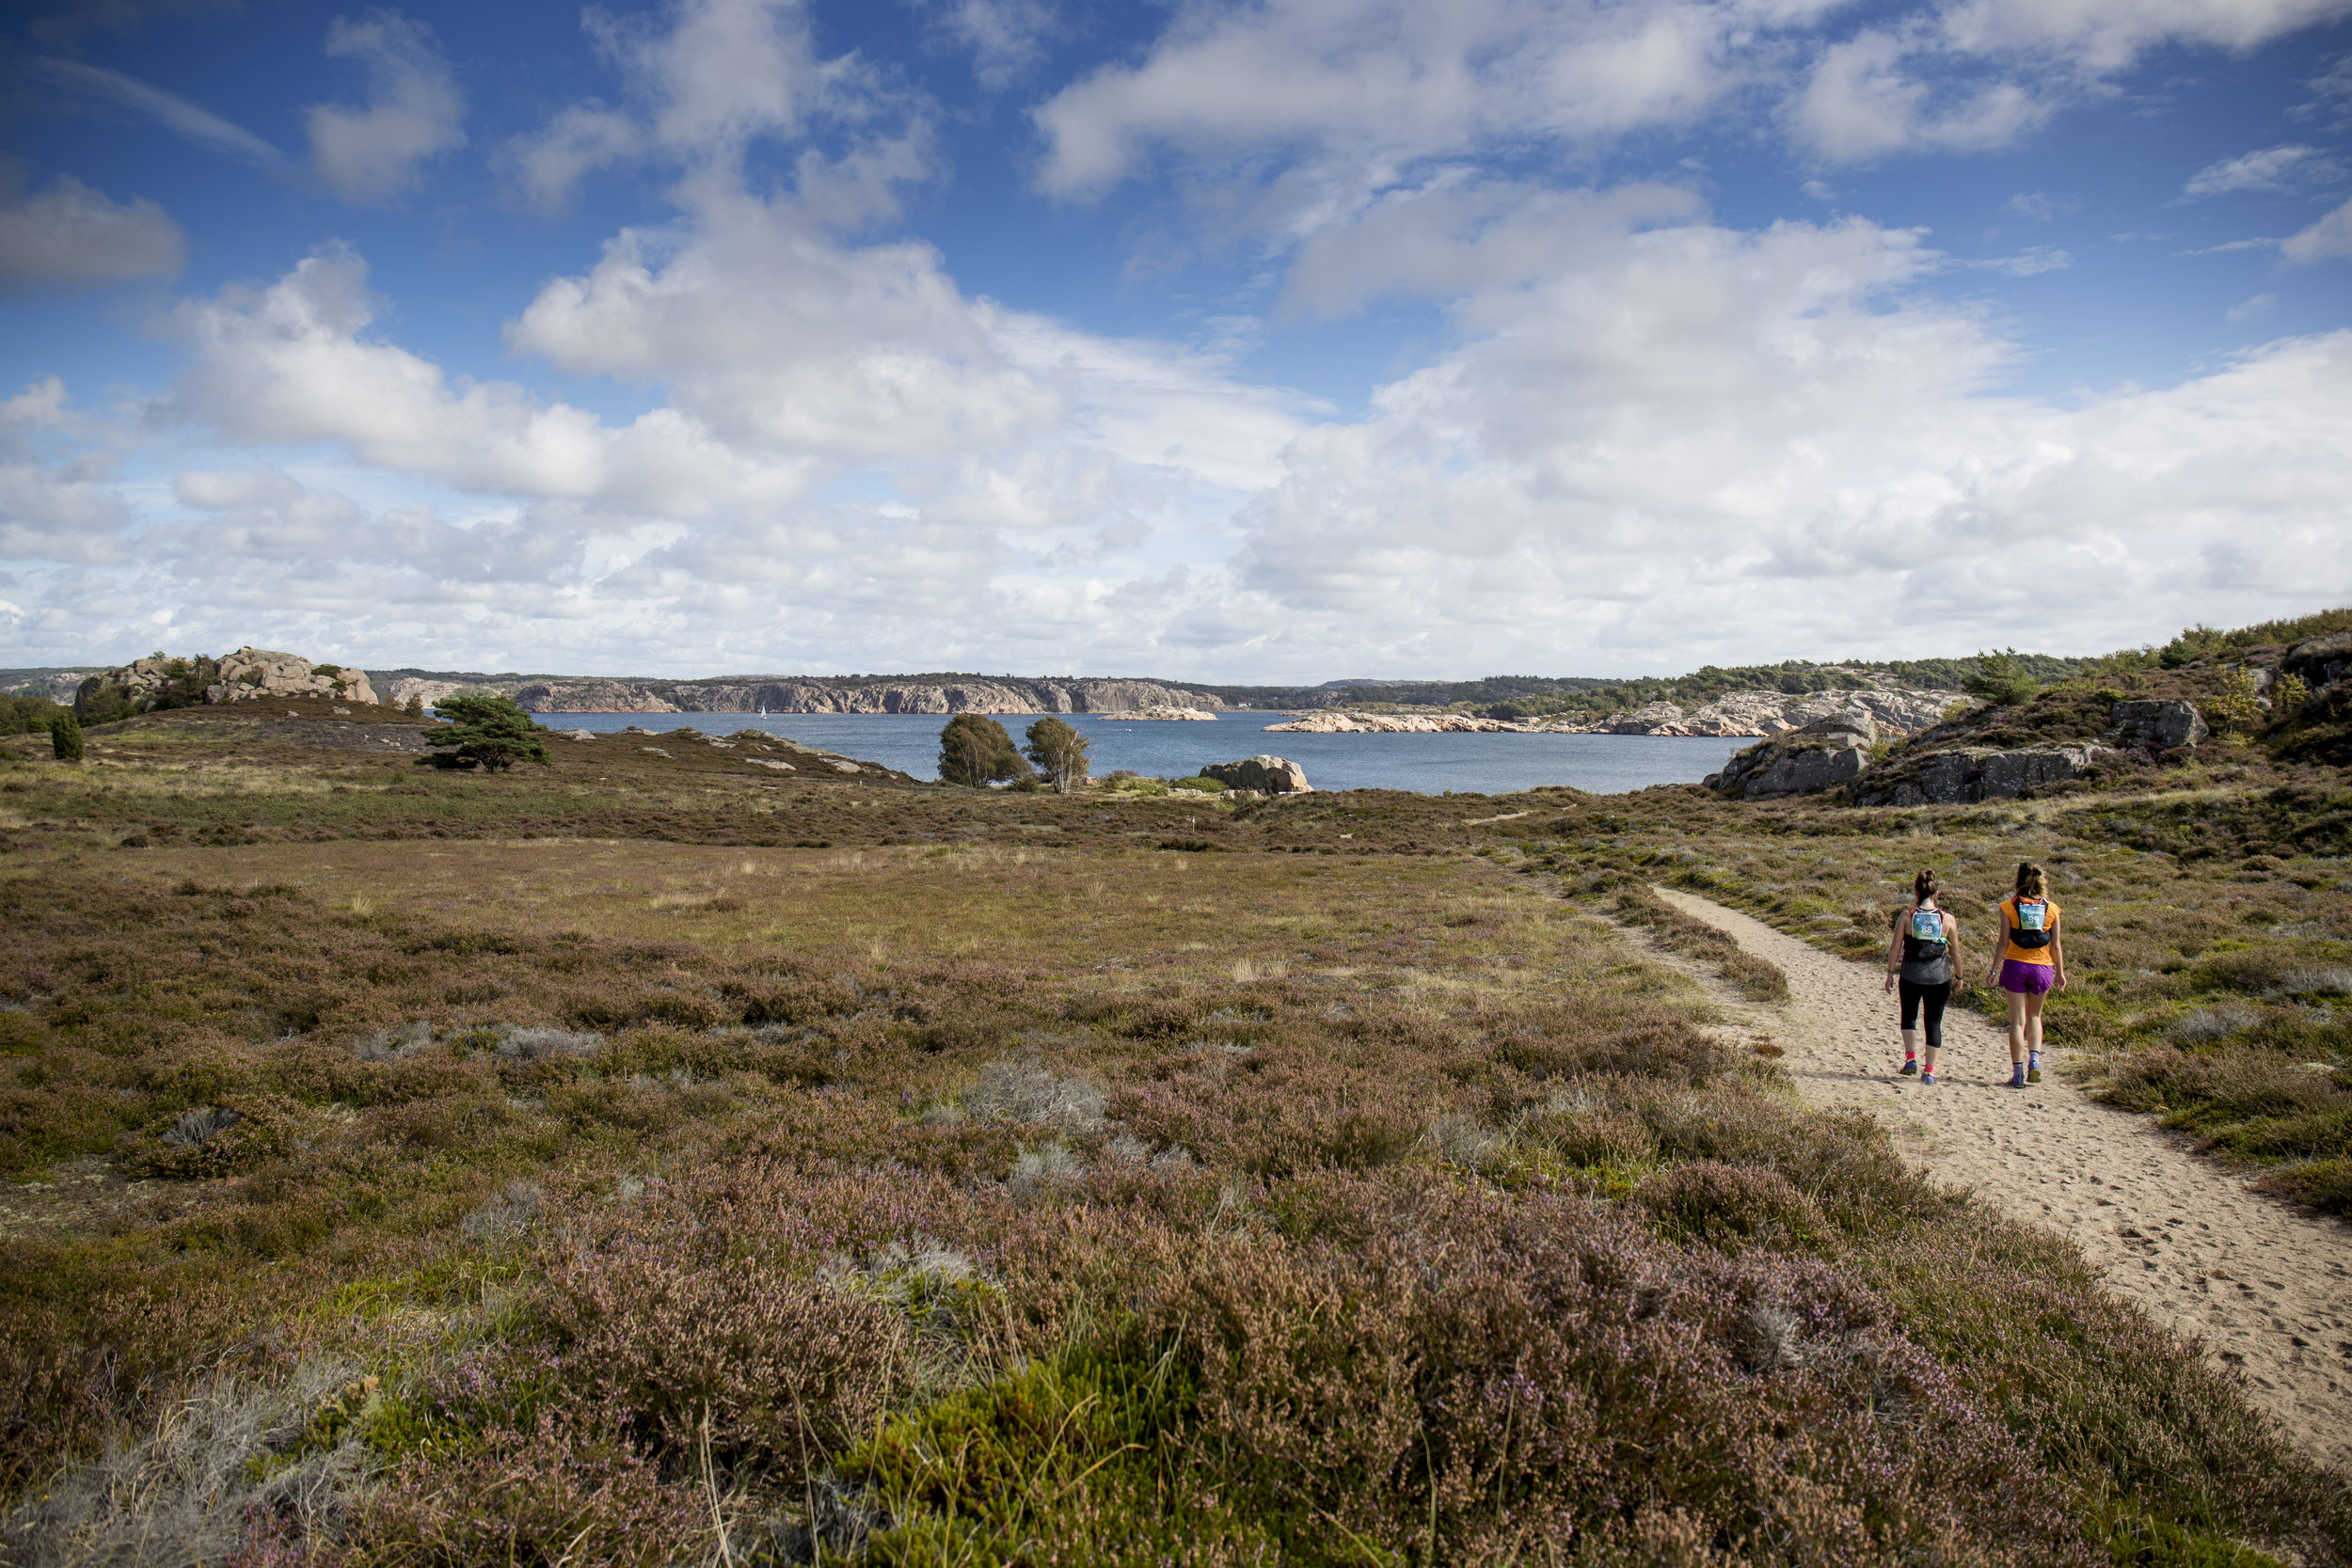 Vast, beautiful landscapes with scrubland, forest and pink granite rocks next to a clear blue sea